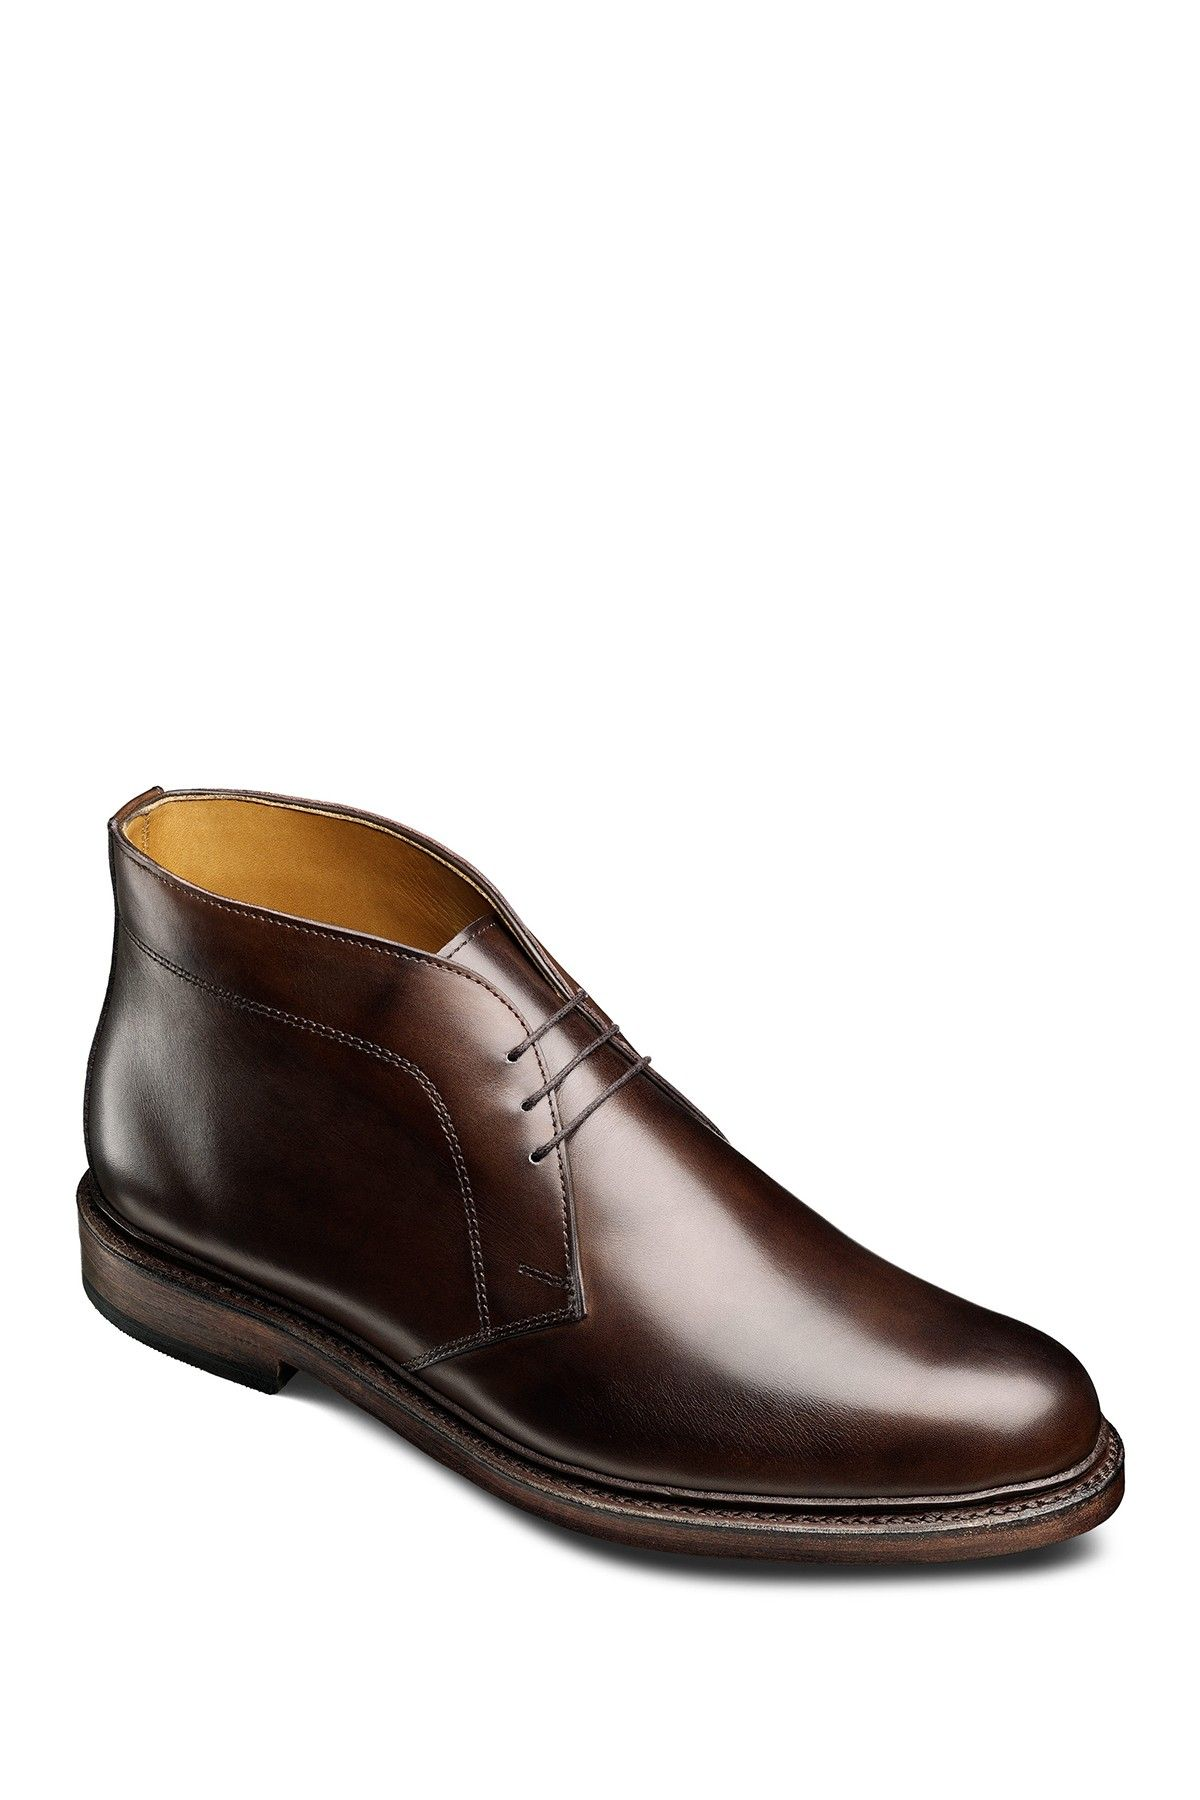 allen edmonds dundee 2 0 chukka boot multiple widths available